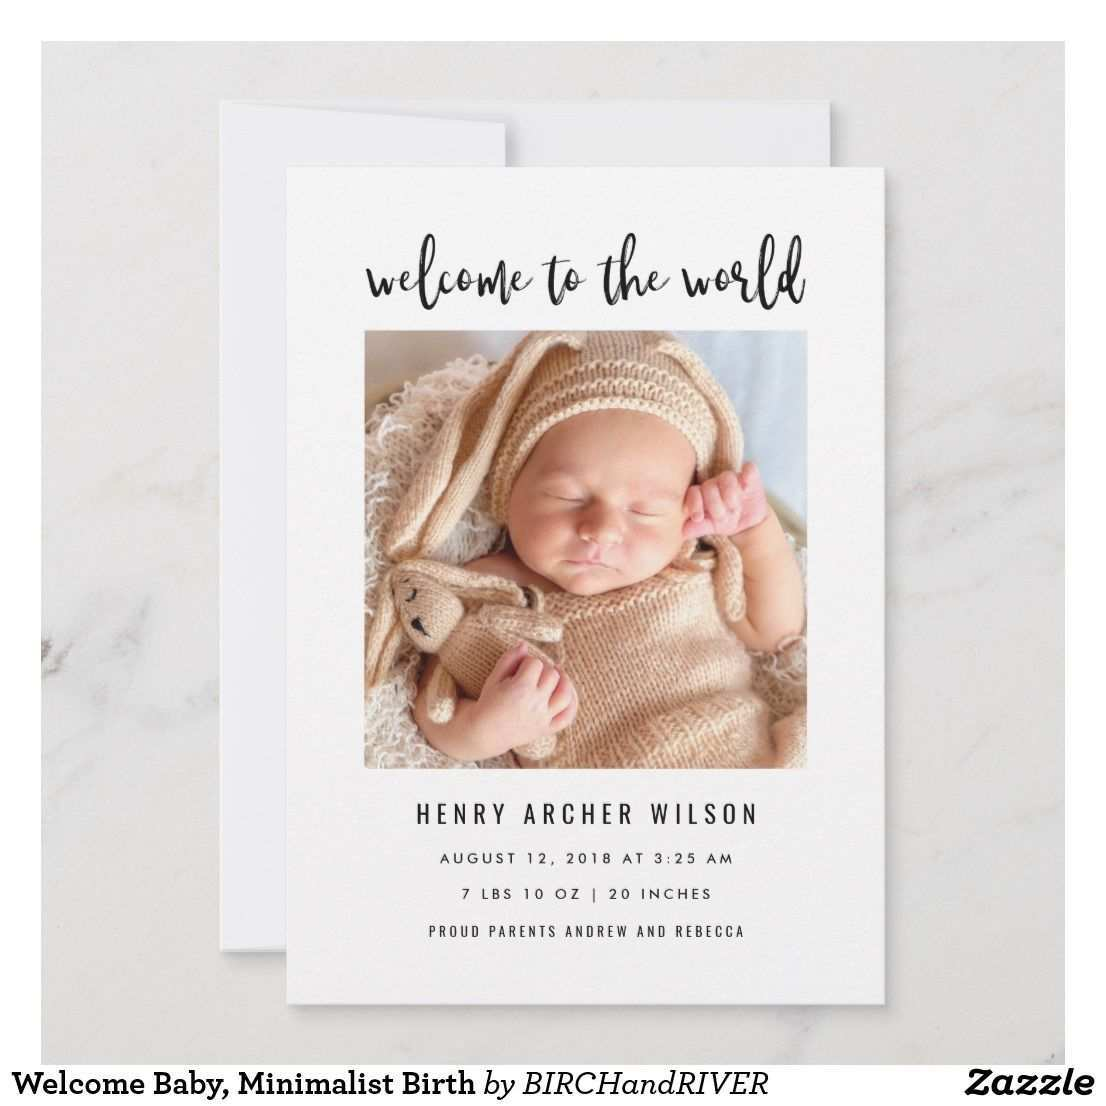 Welcome Baby Minimalist Birth Announcement Zazzle Com Baby Announcement Cards Baby Announcement Getting Pregnant With Twins